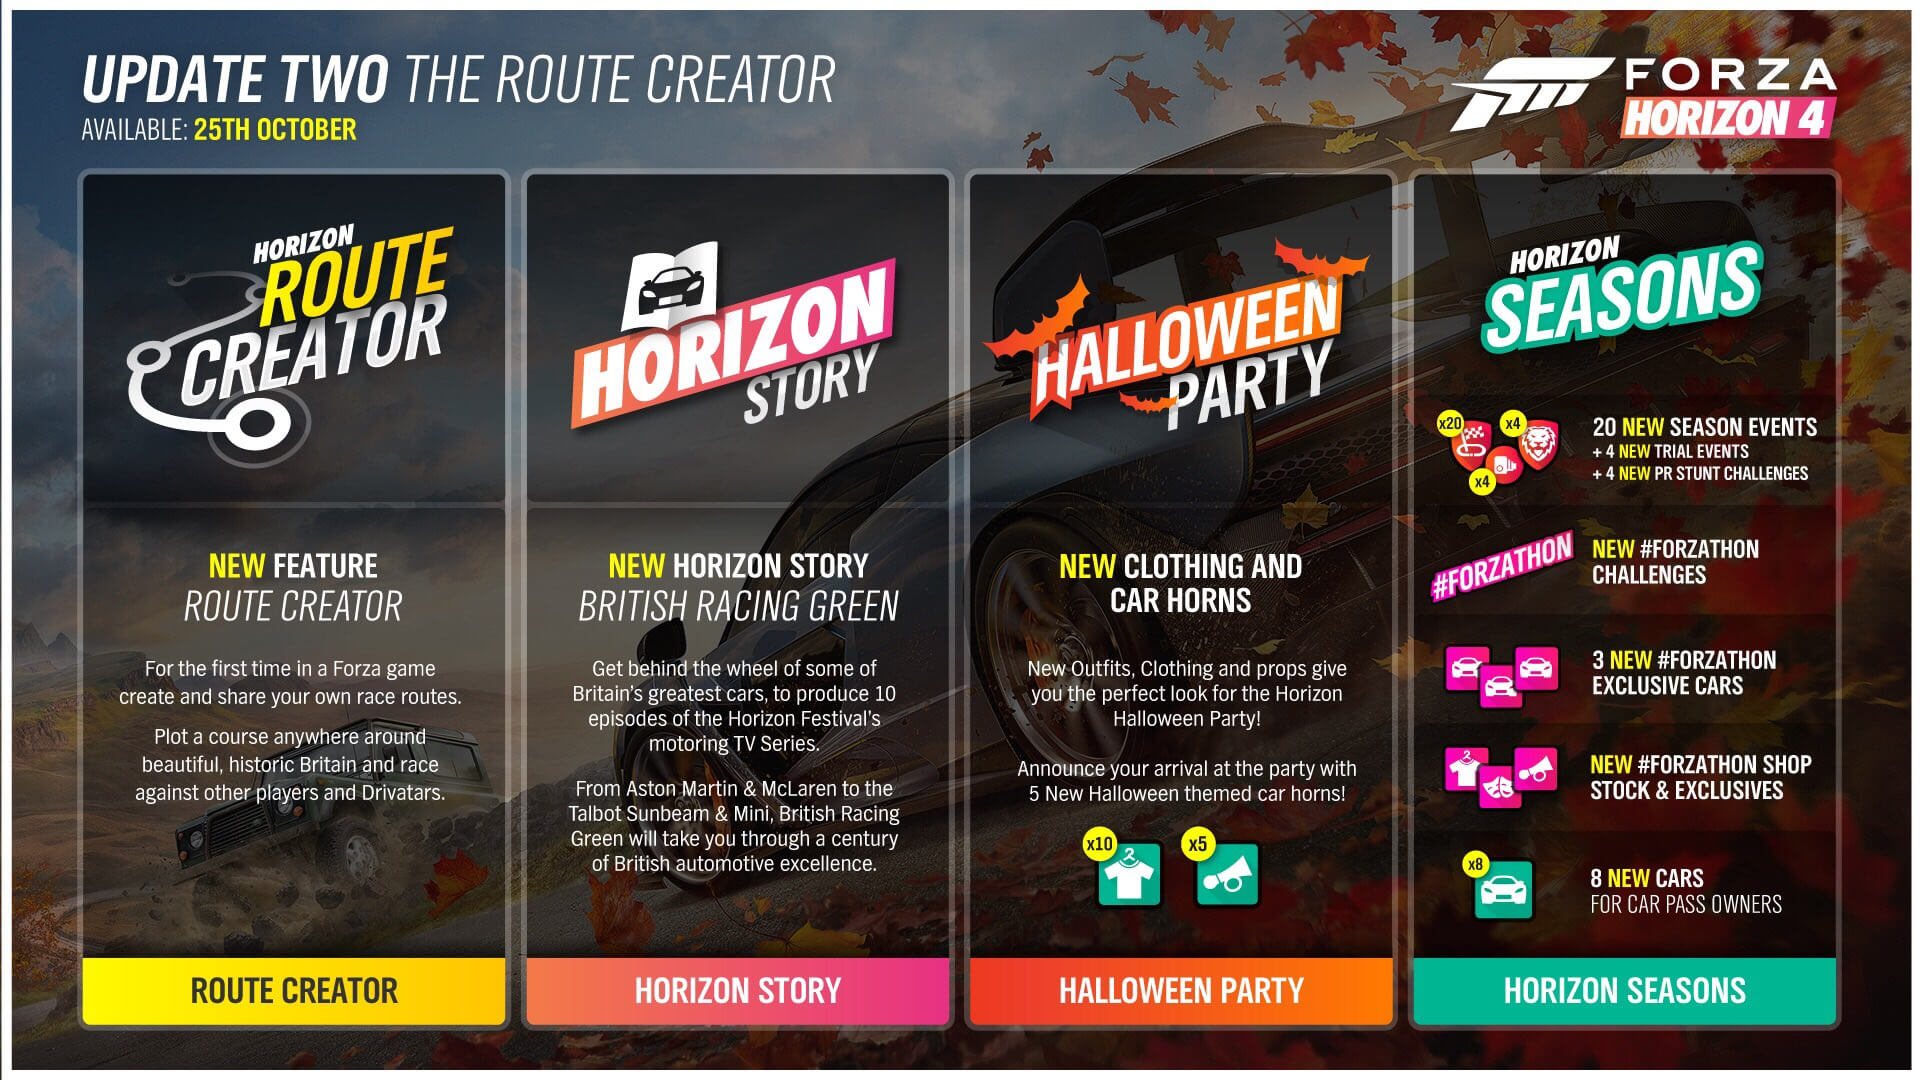 Forza Horizon 4/Update Two